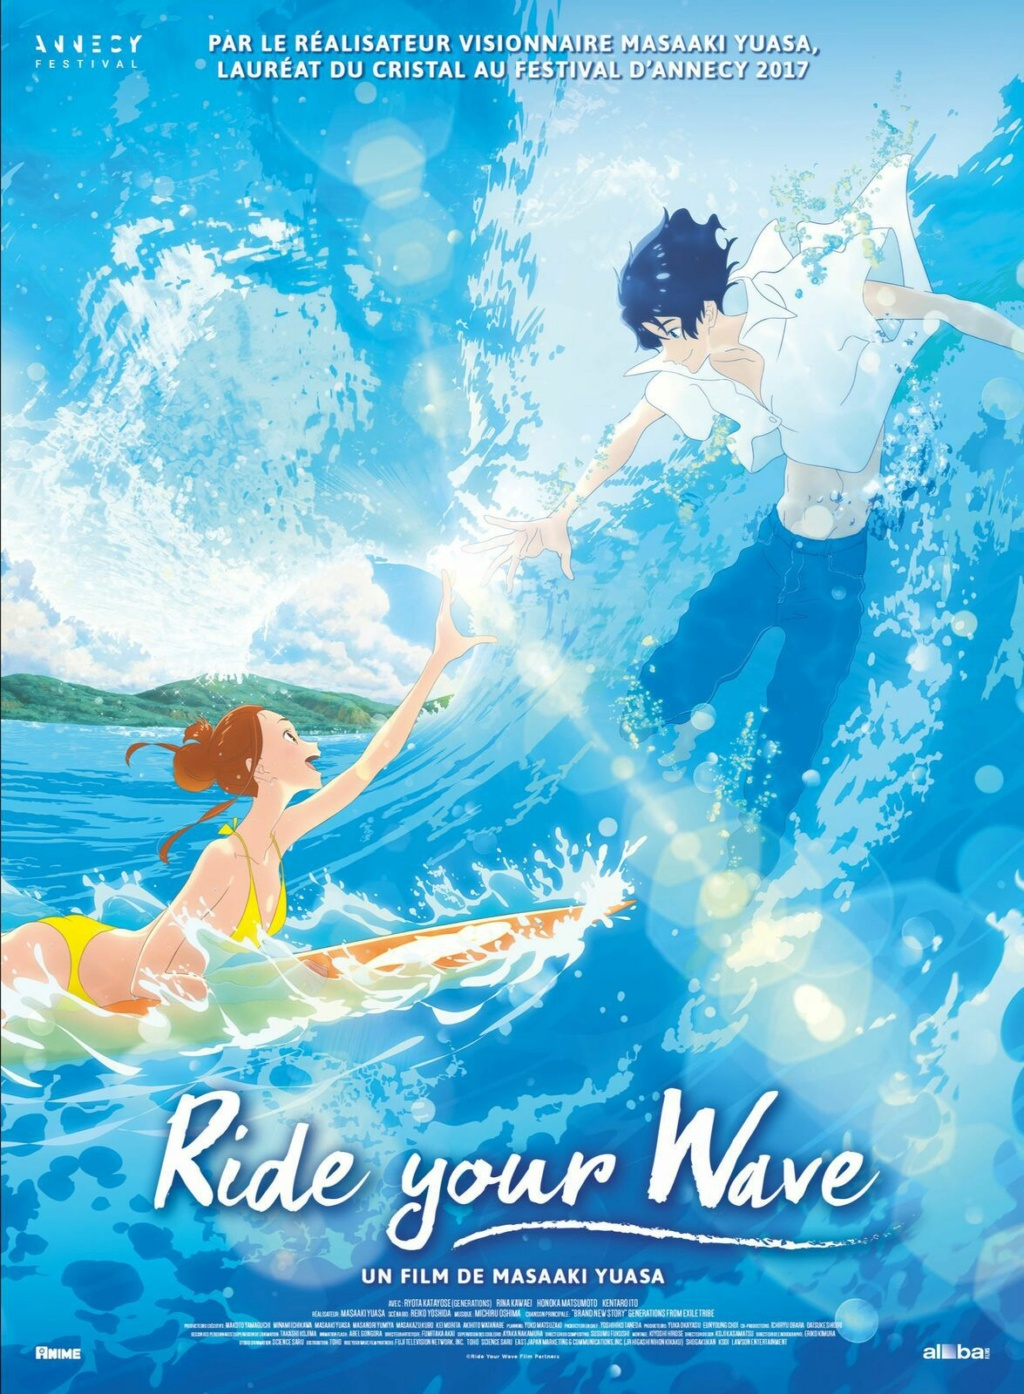 Ride your wave [Anime - 2021] Image_10